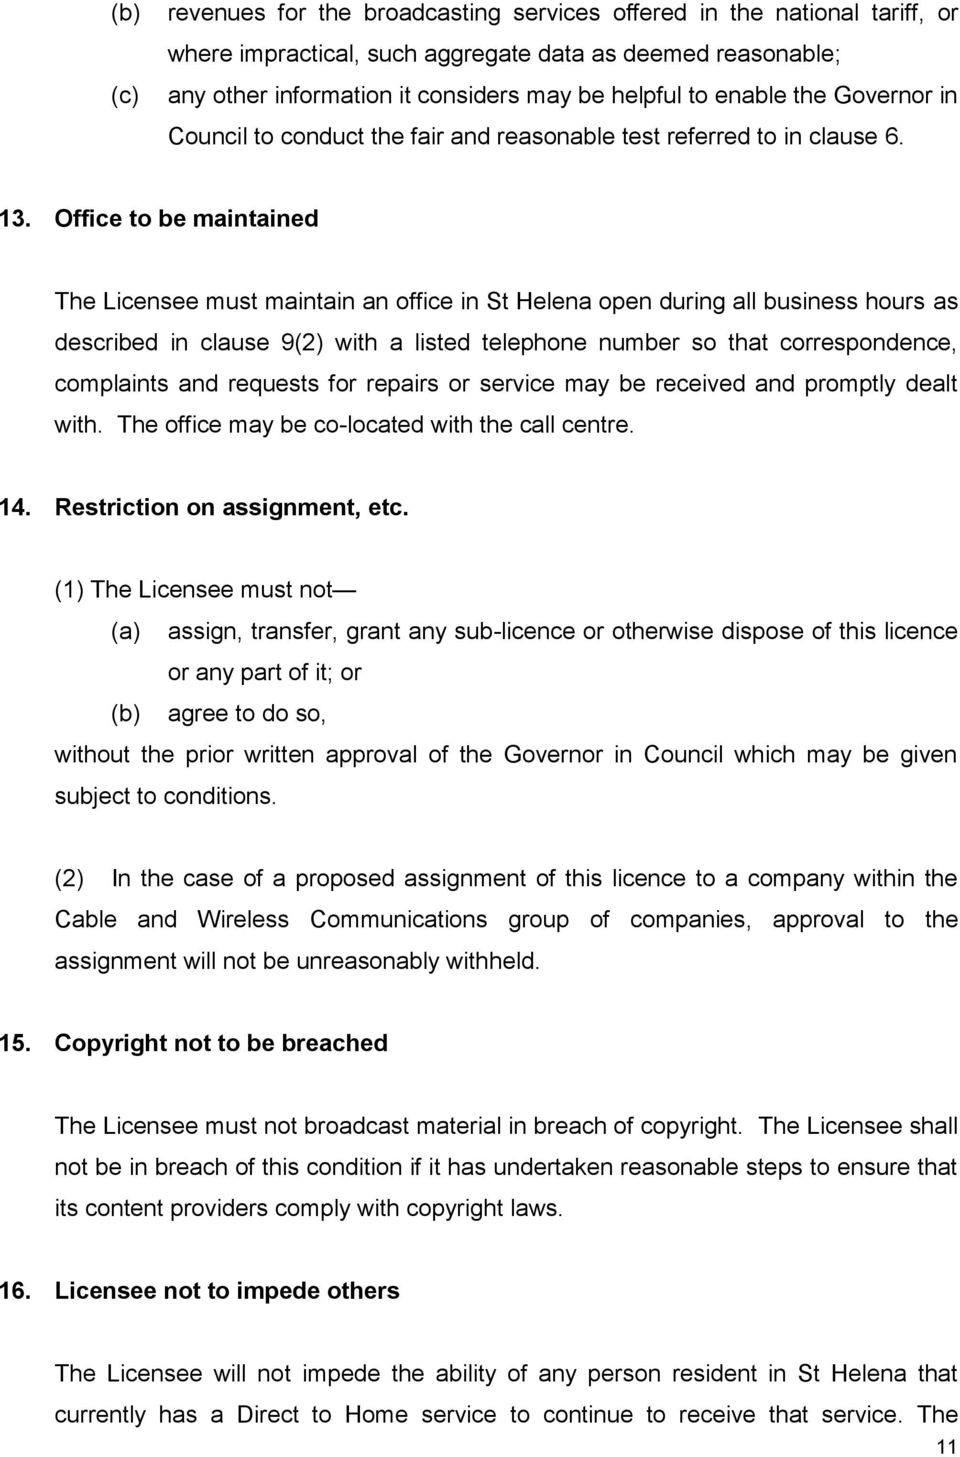 Office to be maintained The Licensee must maintain an office in St Helena open during all business hours as described in clause 9(2) with a listed telephone number so that correspondence, complaints